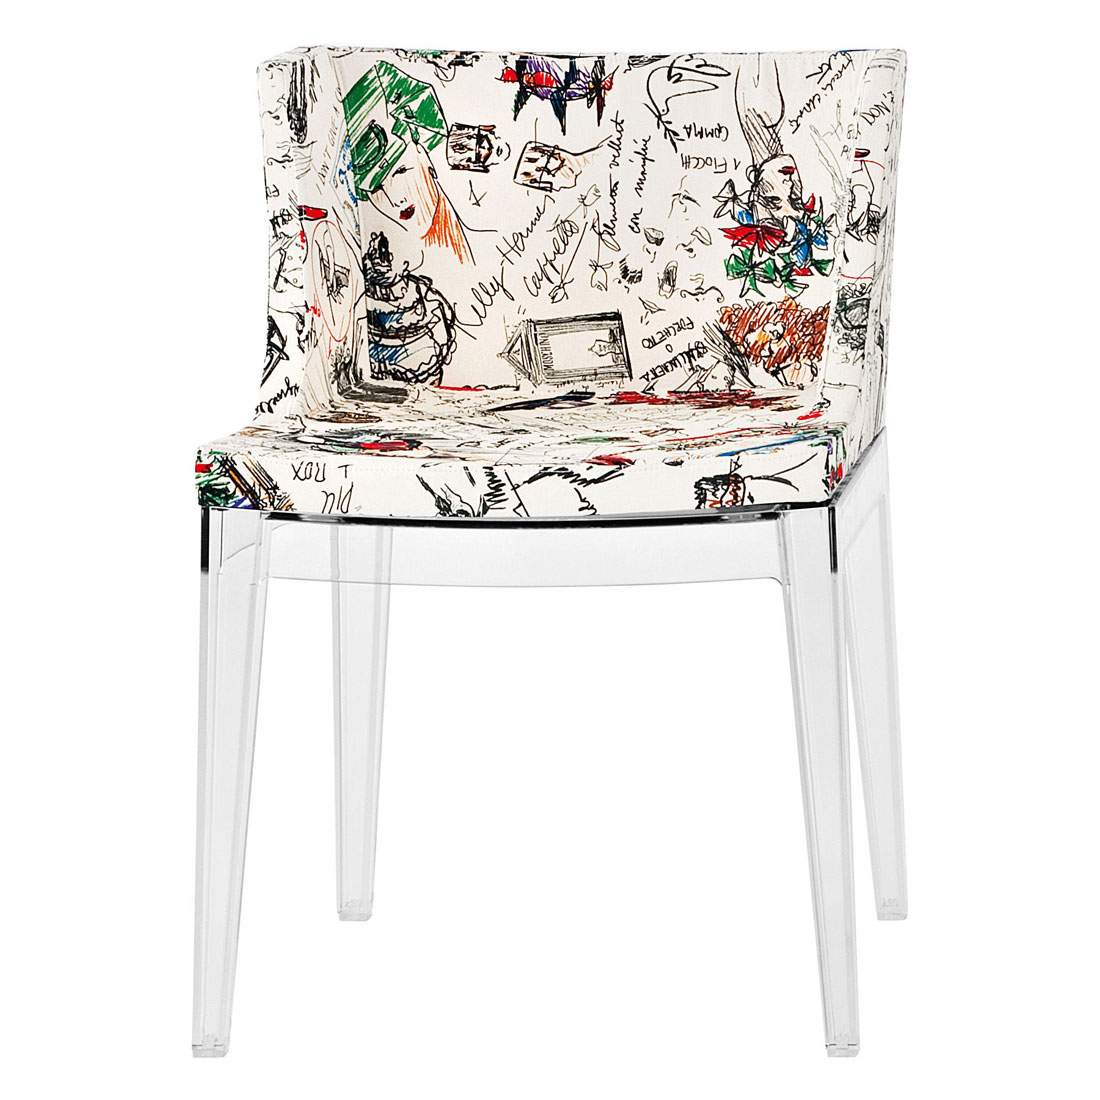 buy online kartell mademoiselle moschino sketches chair -